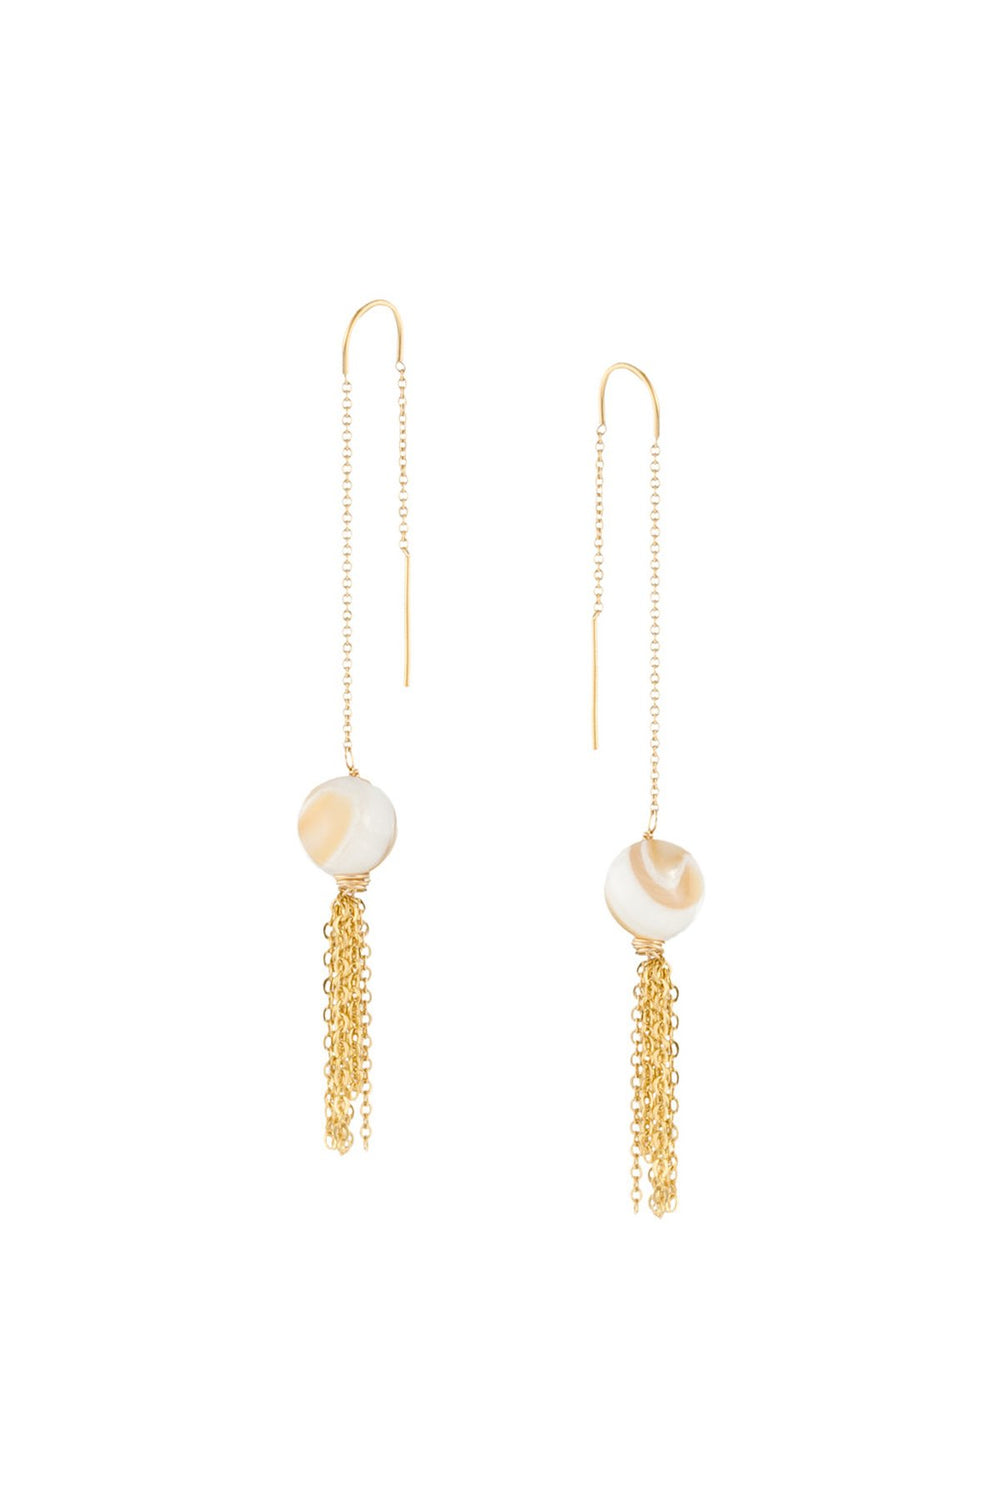 TAUDREY - Classico Earrings • Gold